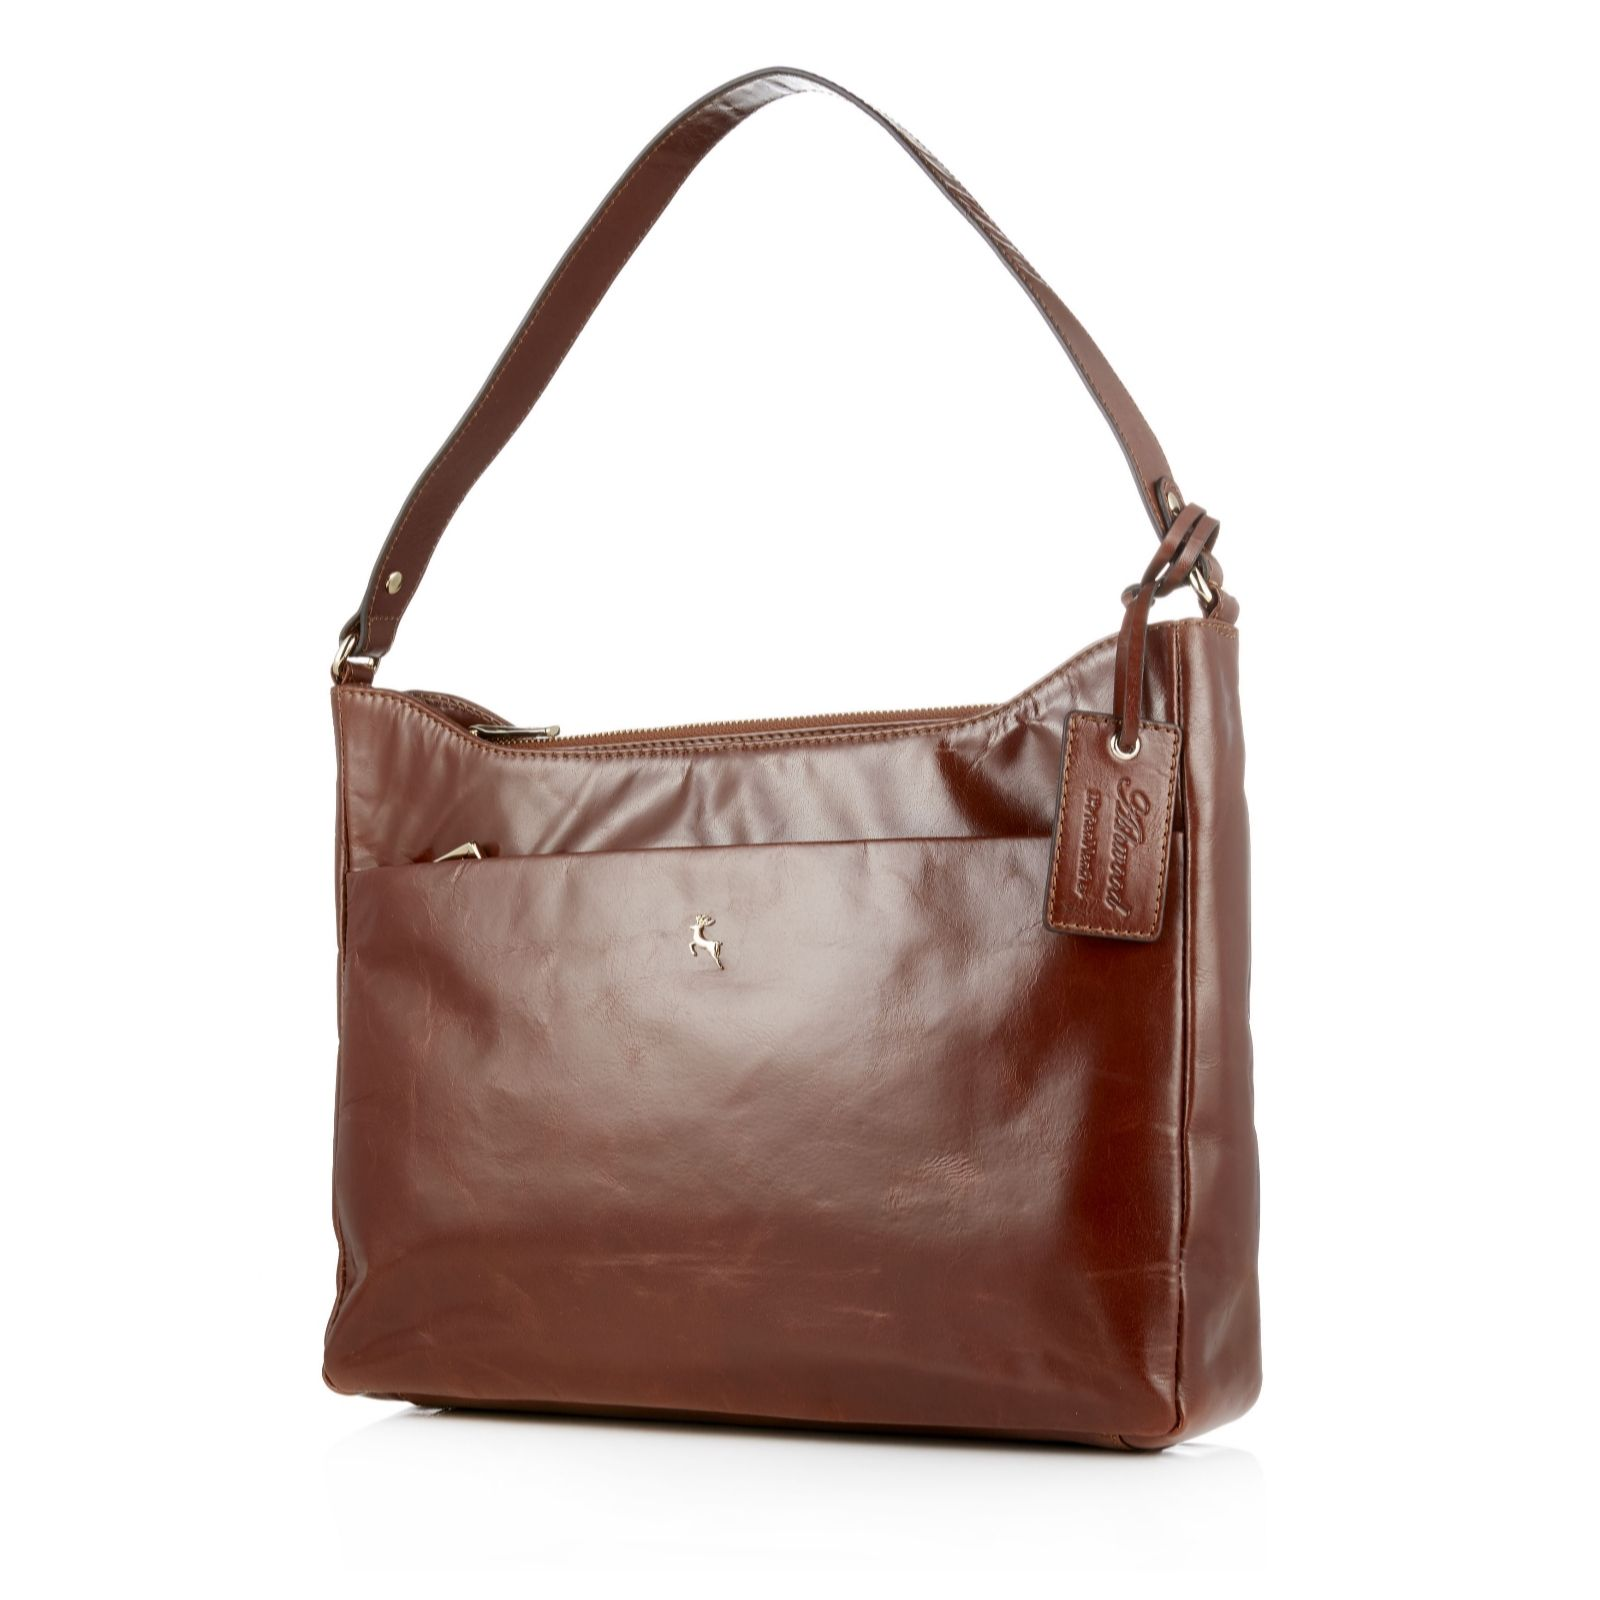 b3dab0a34ffe Ashwood Leather Structured Shoulder Bag - QVC UK